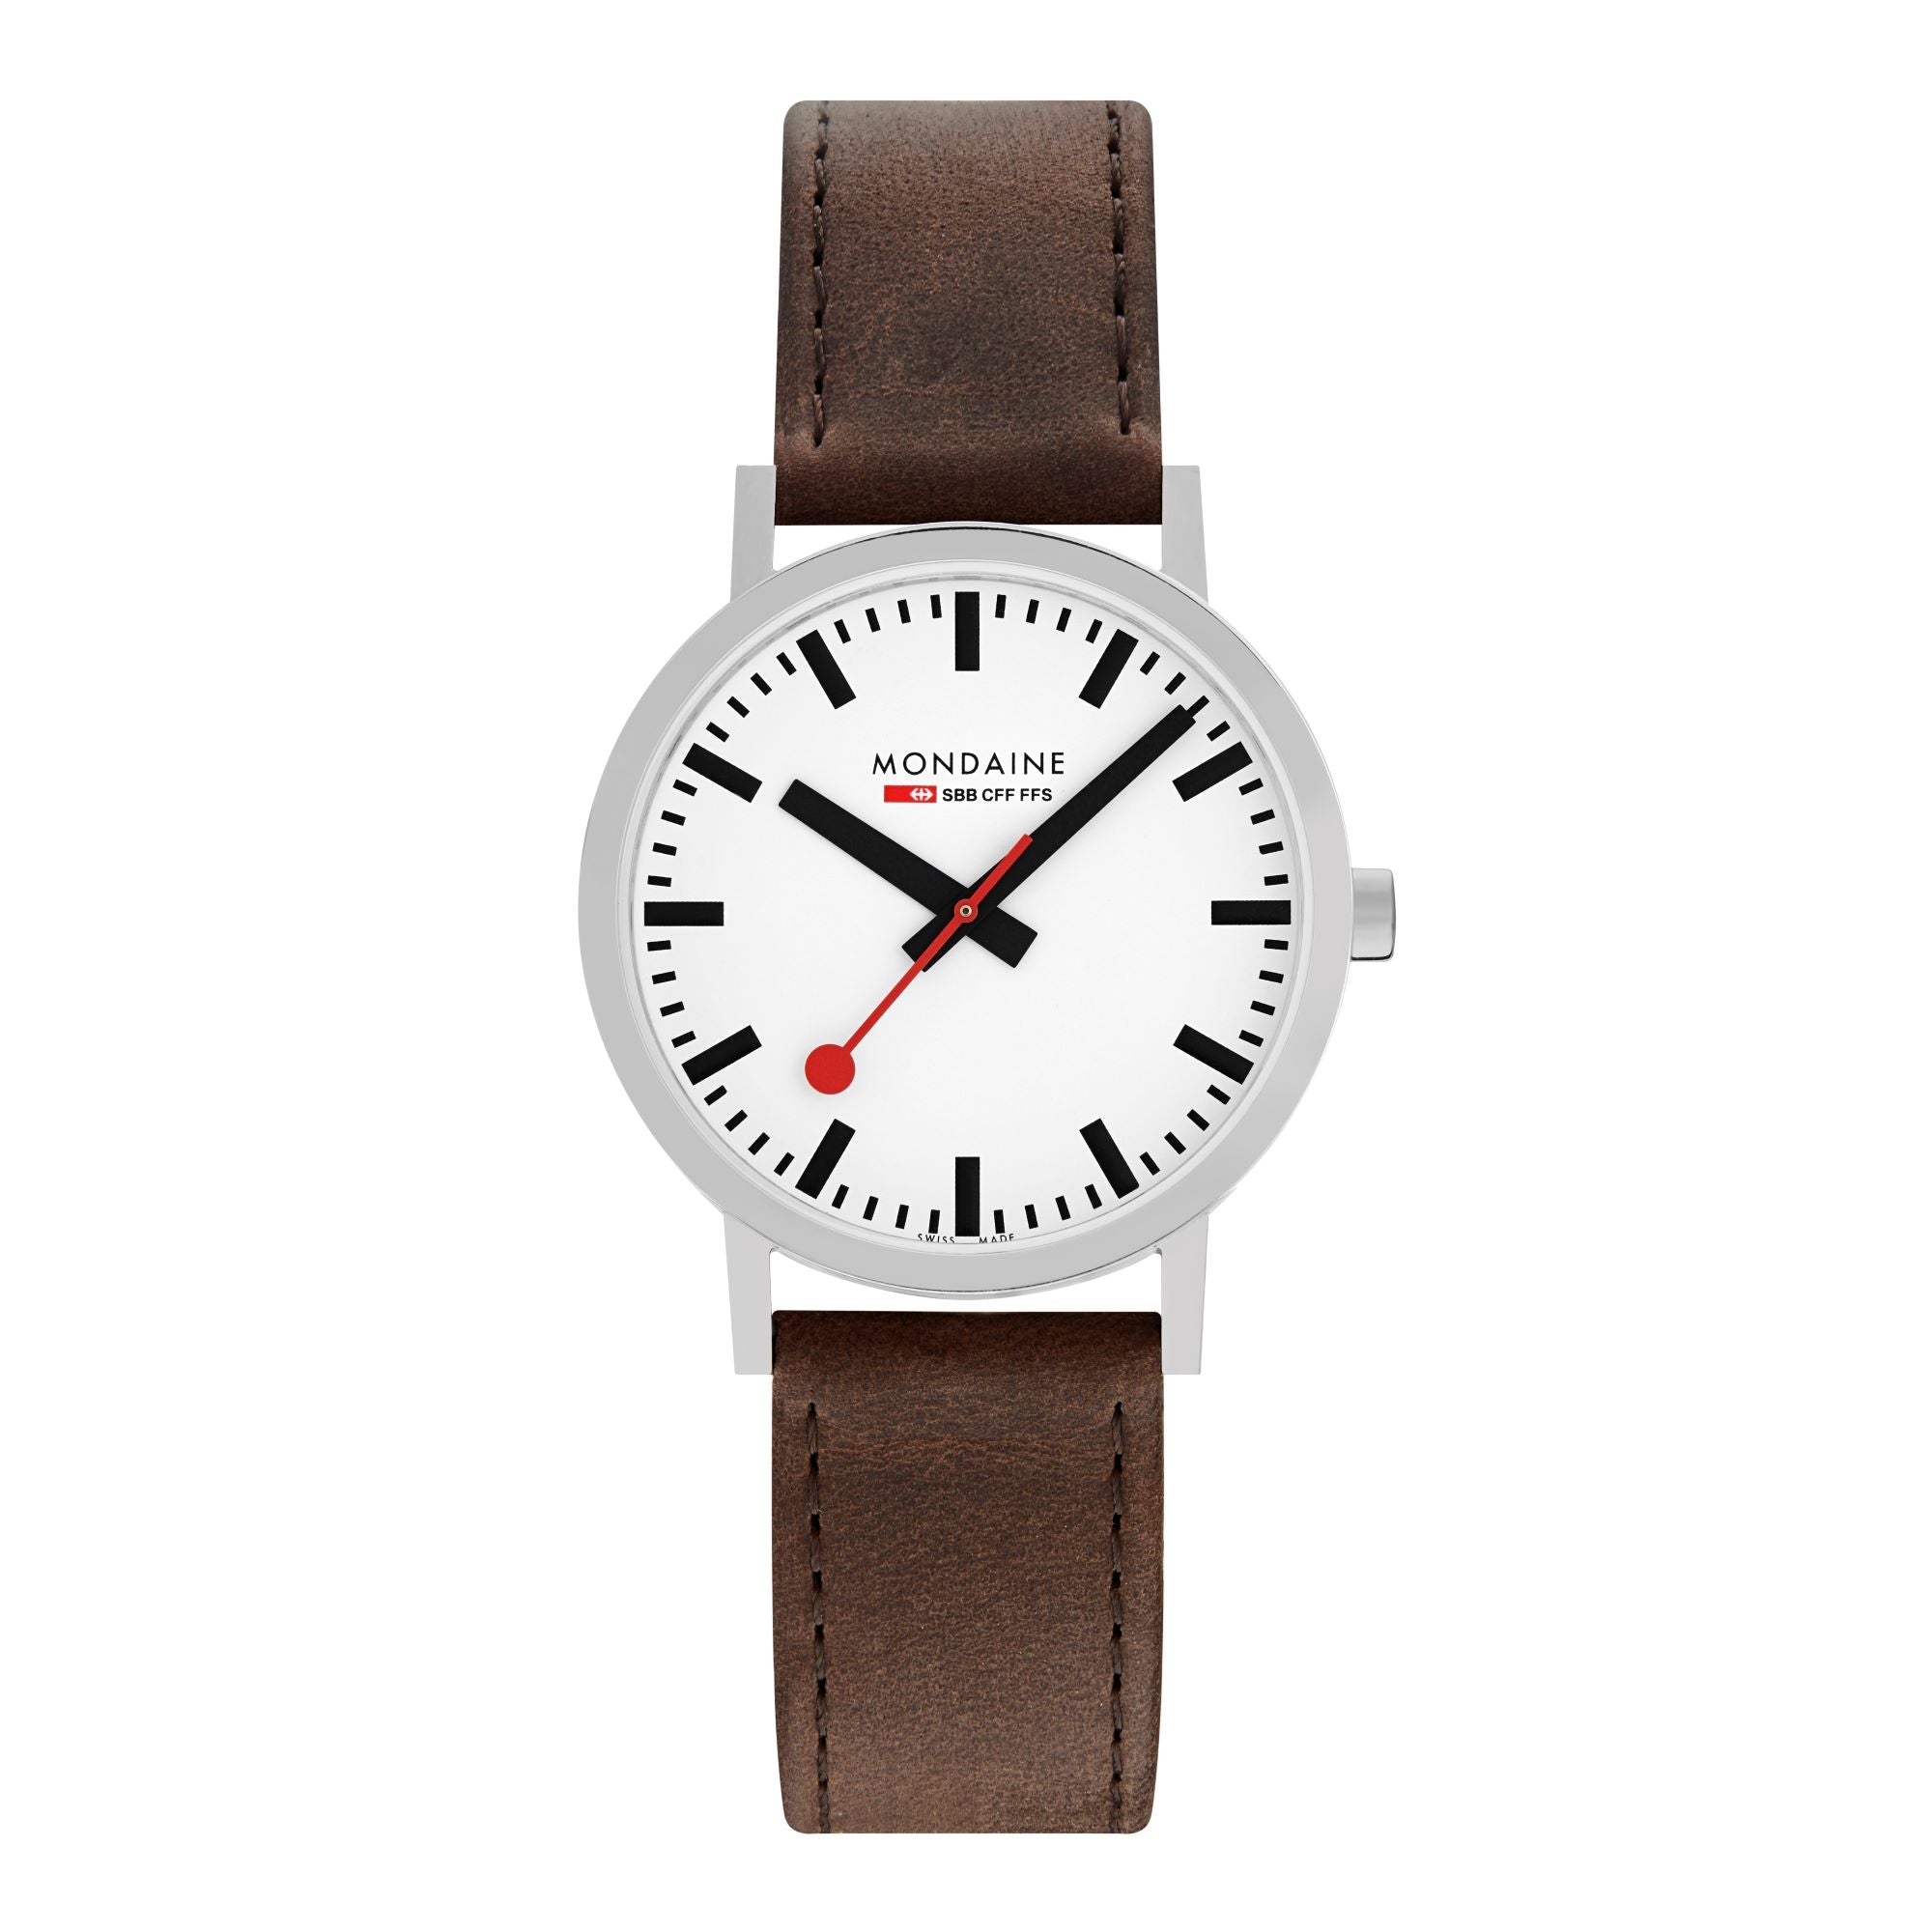 Mondaine Classic, 40 mm, brown leather watch